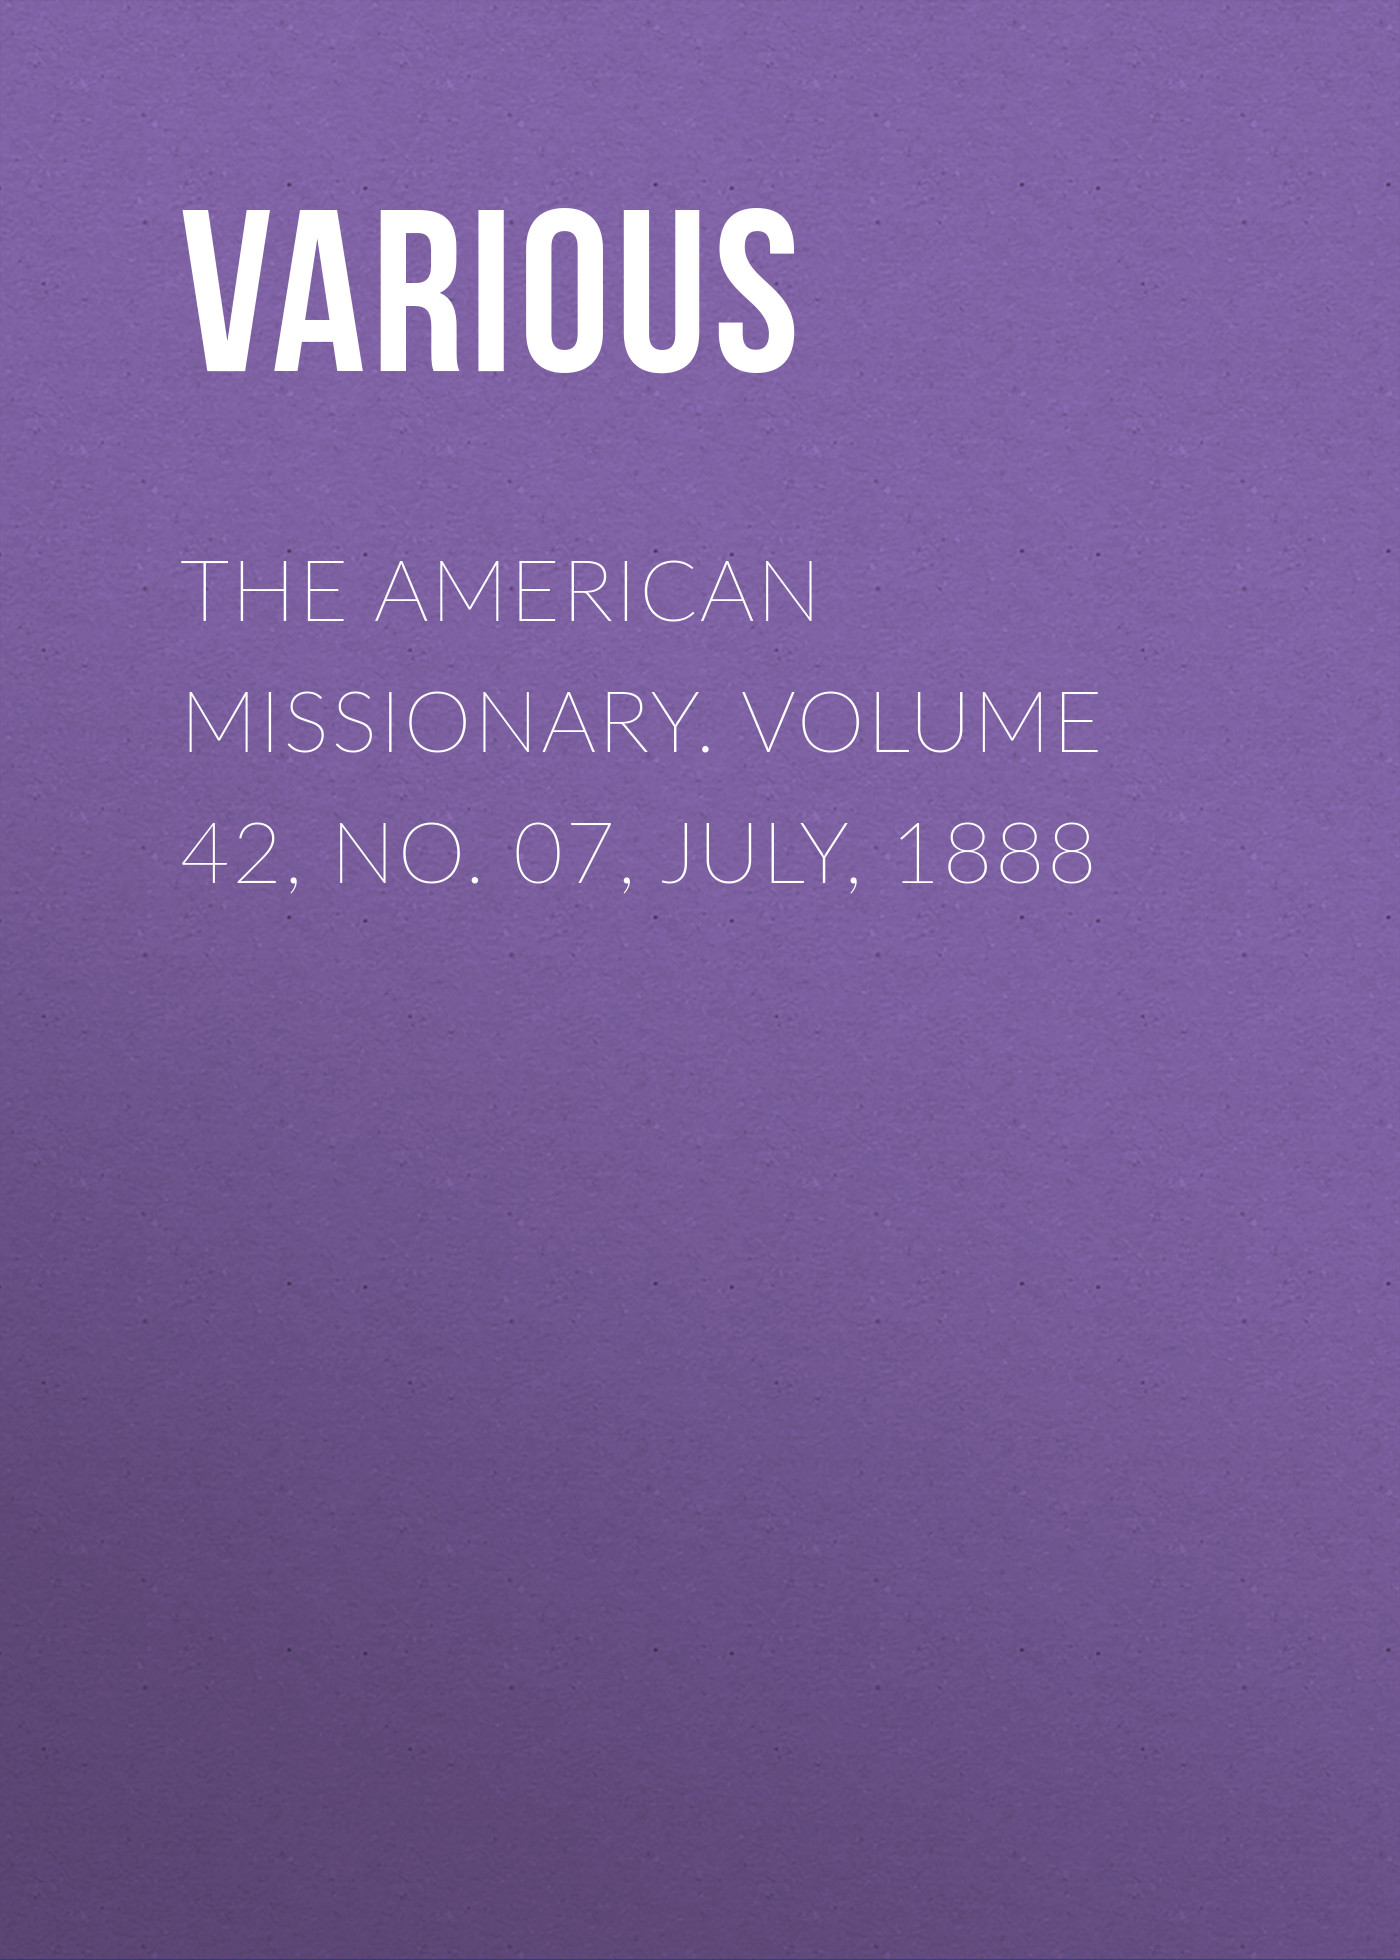 Various The American Missionary. Volume 42, No. 07, July, 1888